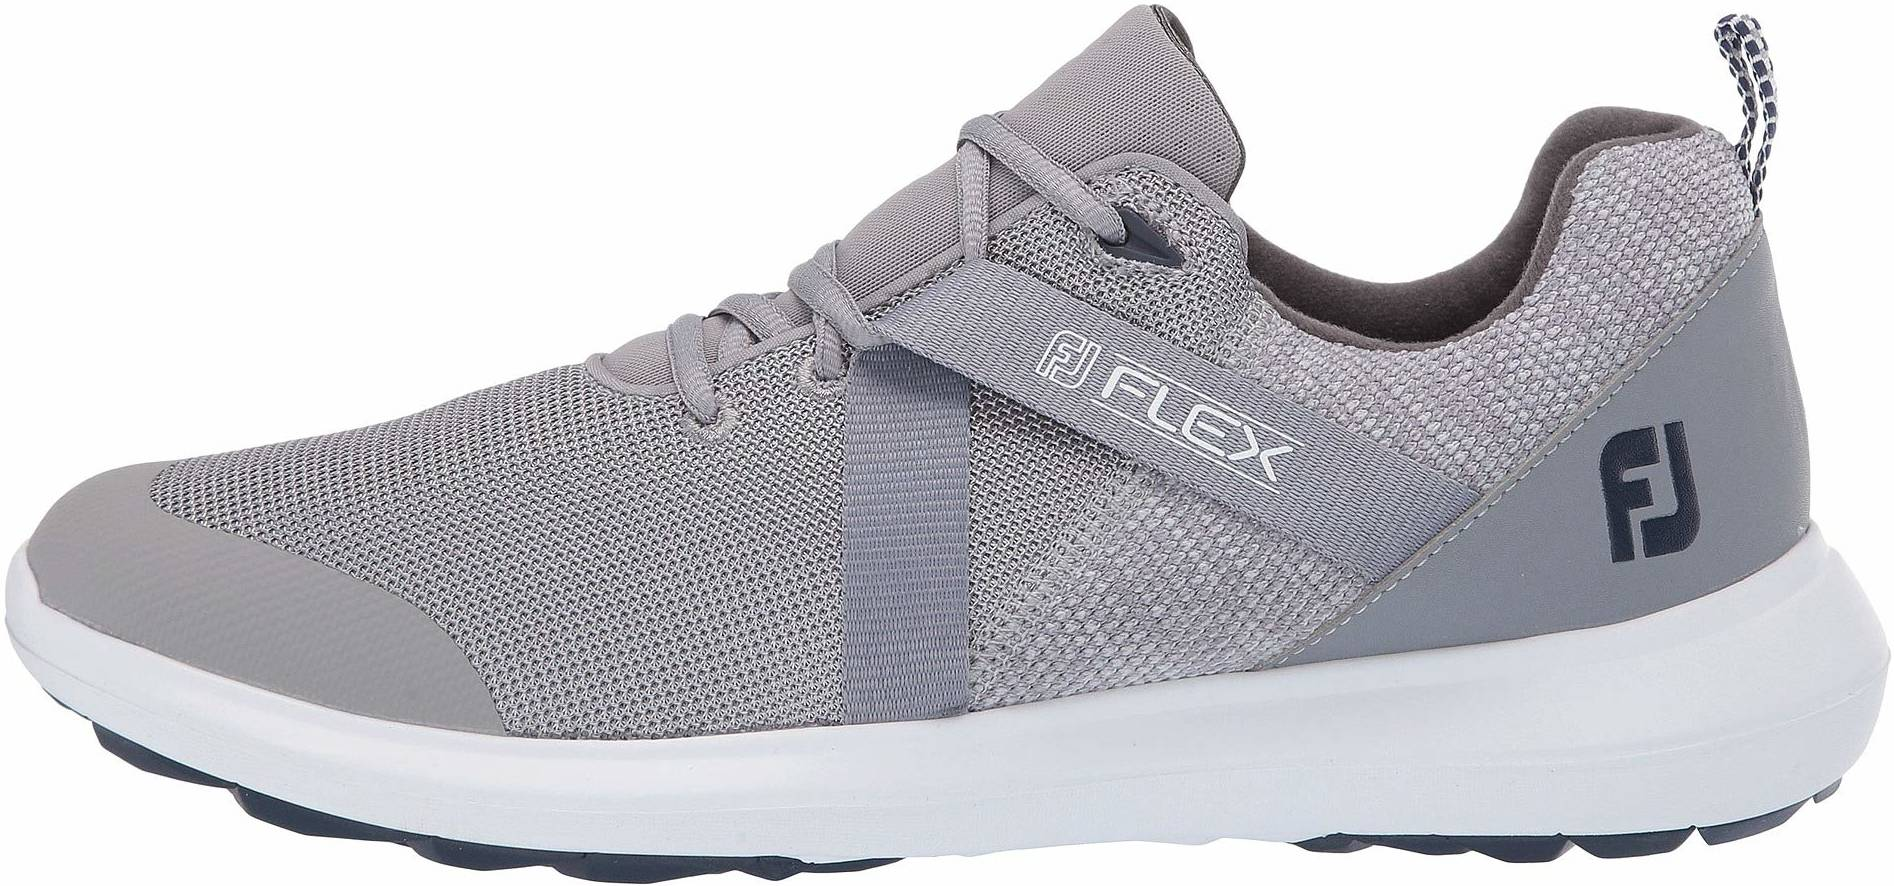 Save 14% on Narrow Athletic Golf Shoes